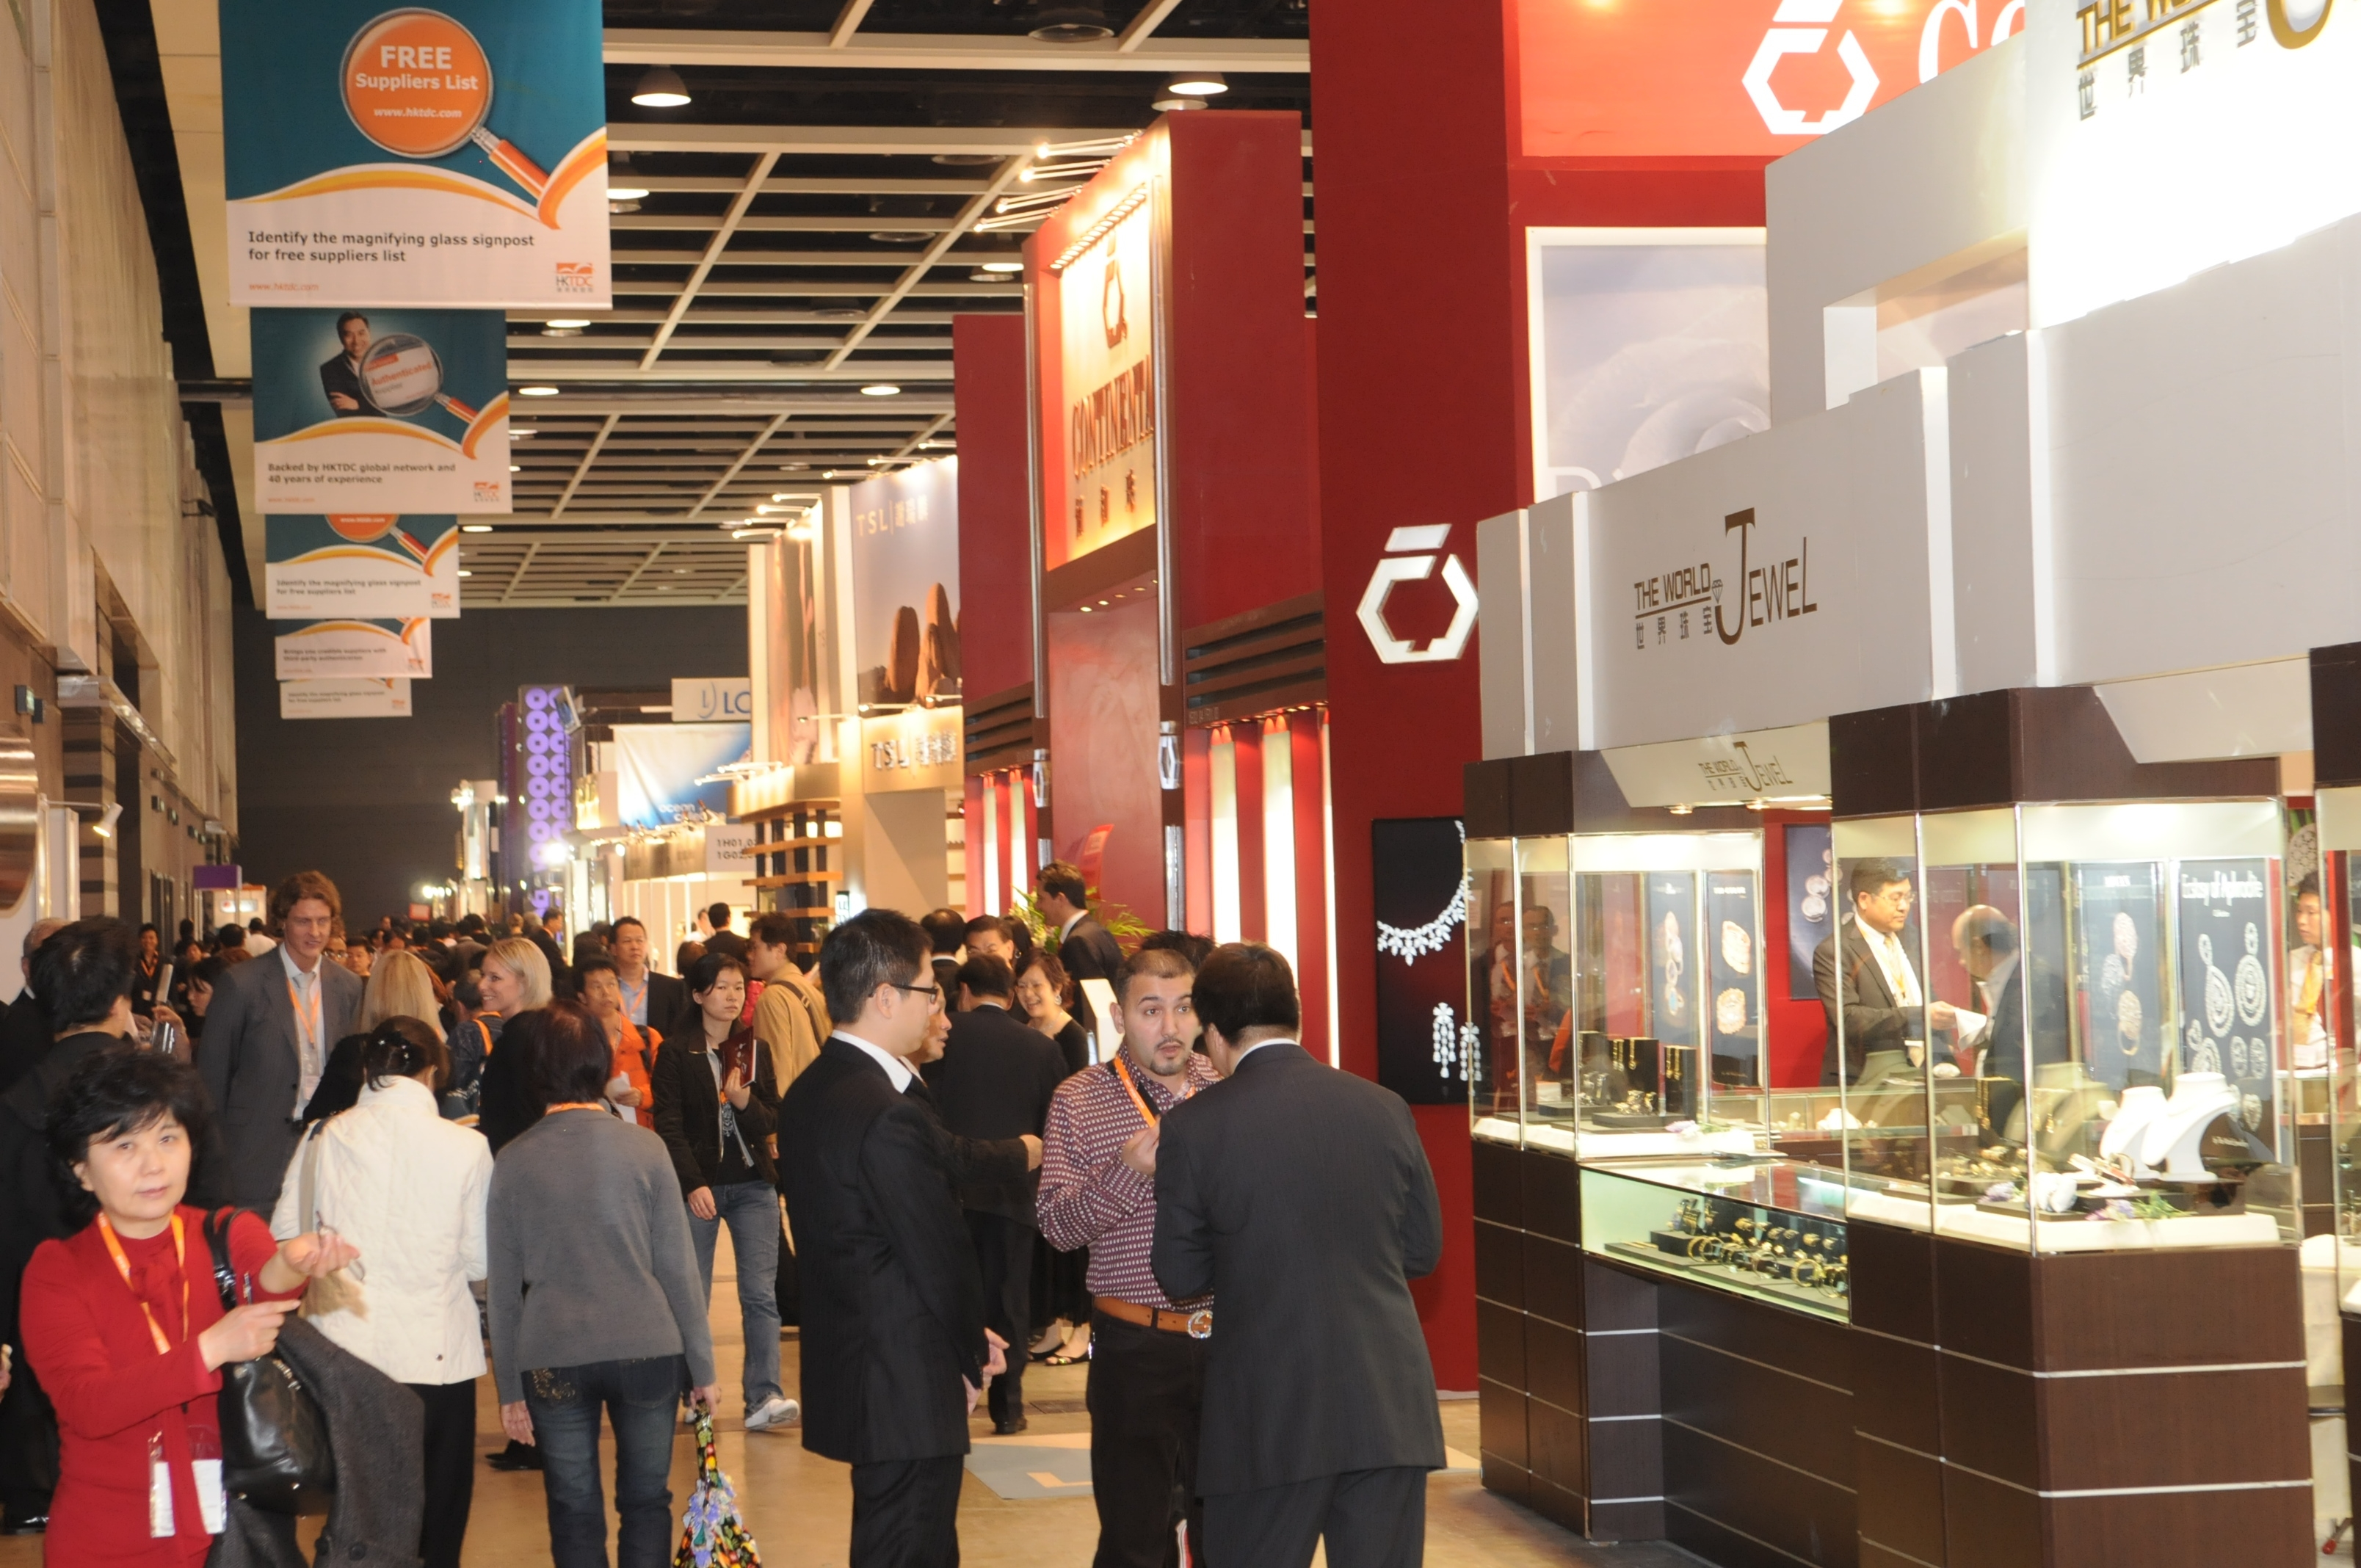 hong kong's jewellery market Amid market turmoil, chow tai fook jewellery, based in hong kong, is set to stage one of the largest initial public offerings in the world this year, with a listing that could raise more than $3 billion next month.